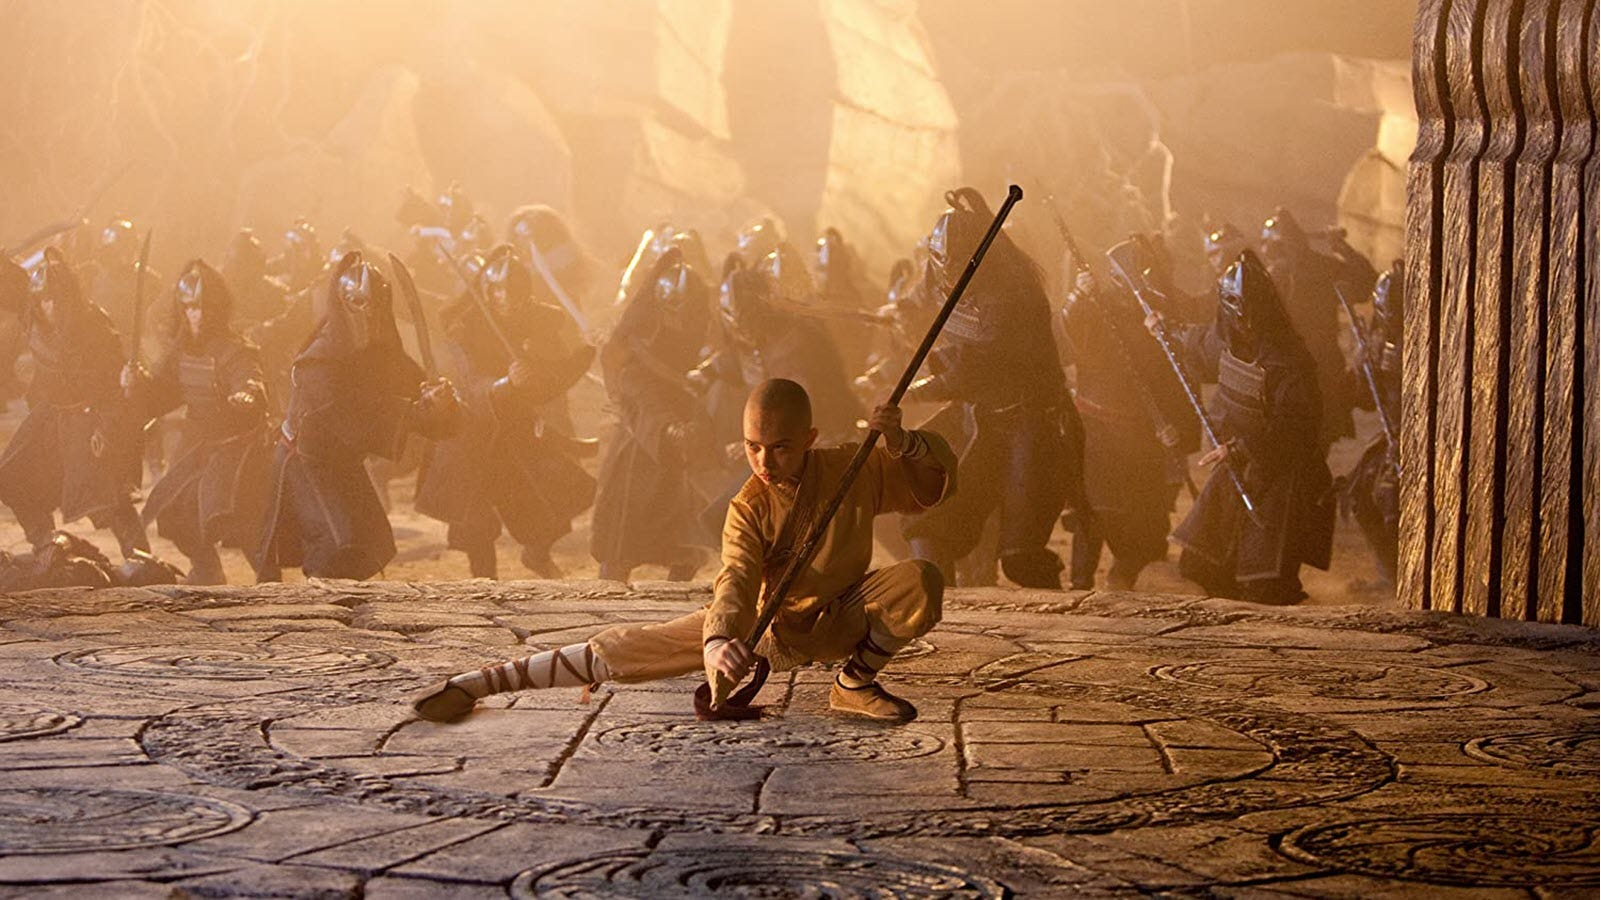 Aang surrounded by blurry enemies.